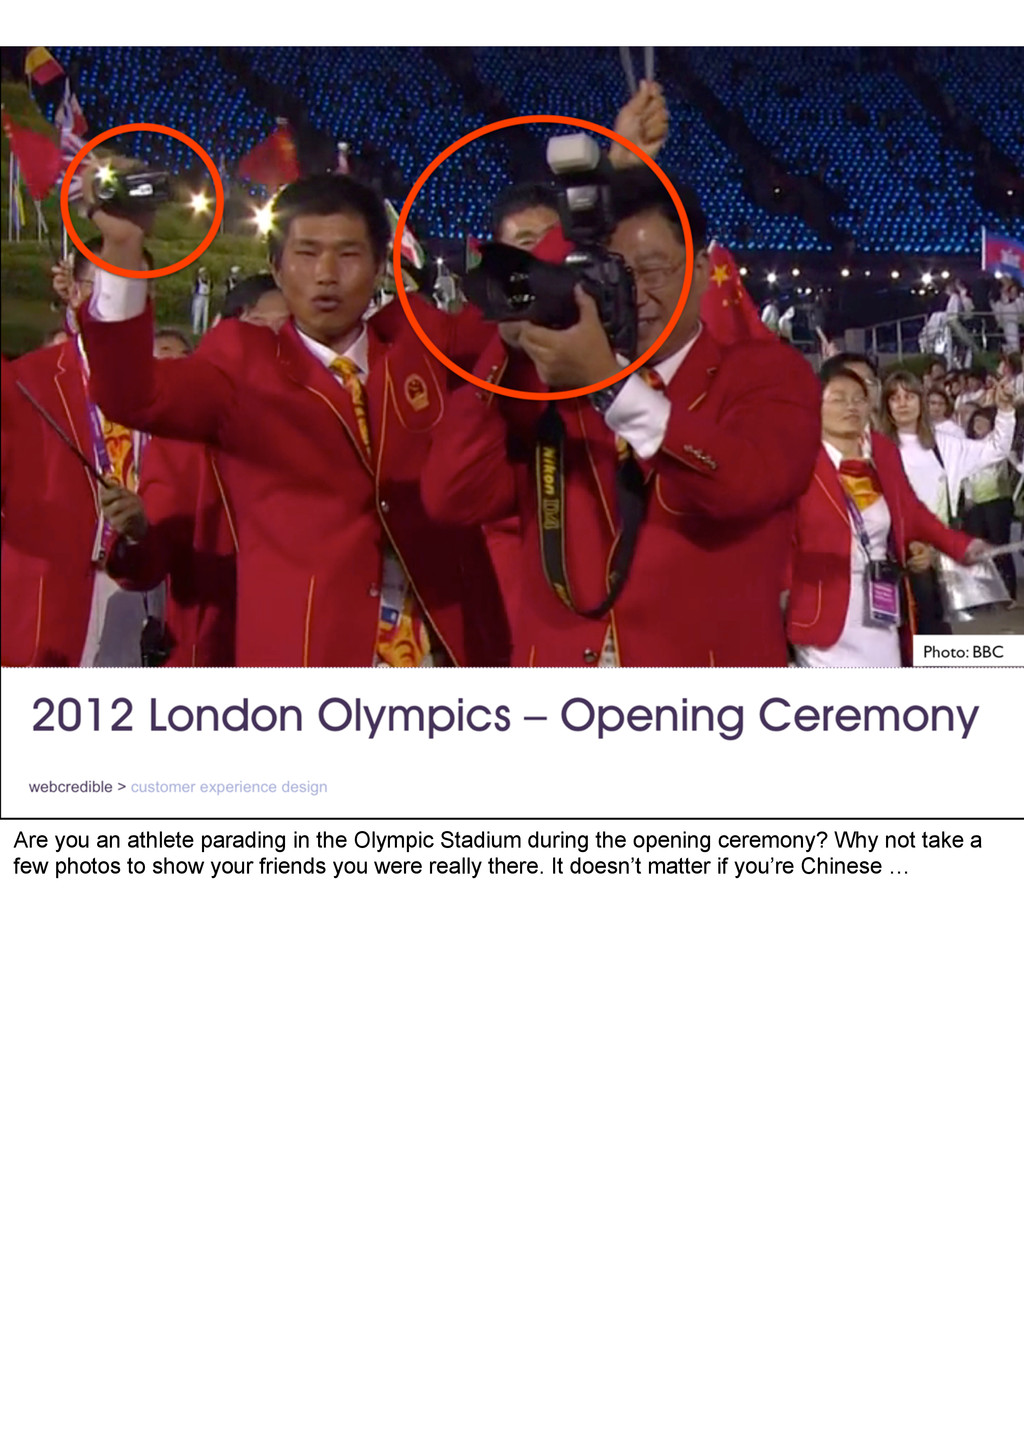 Are you an athlete parading in the Olympic Stad...